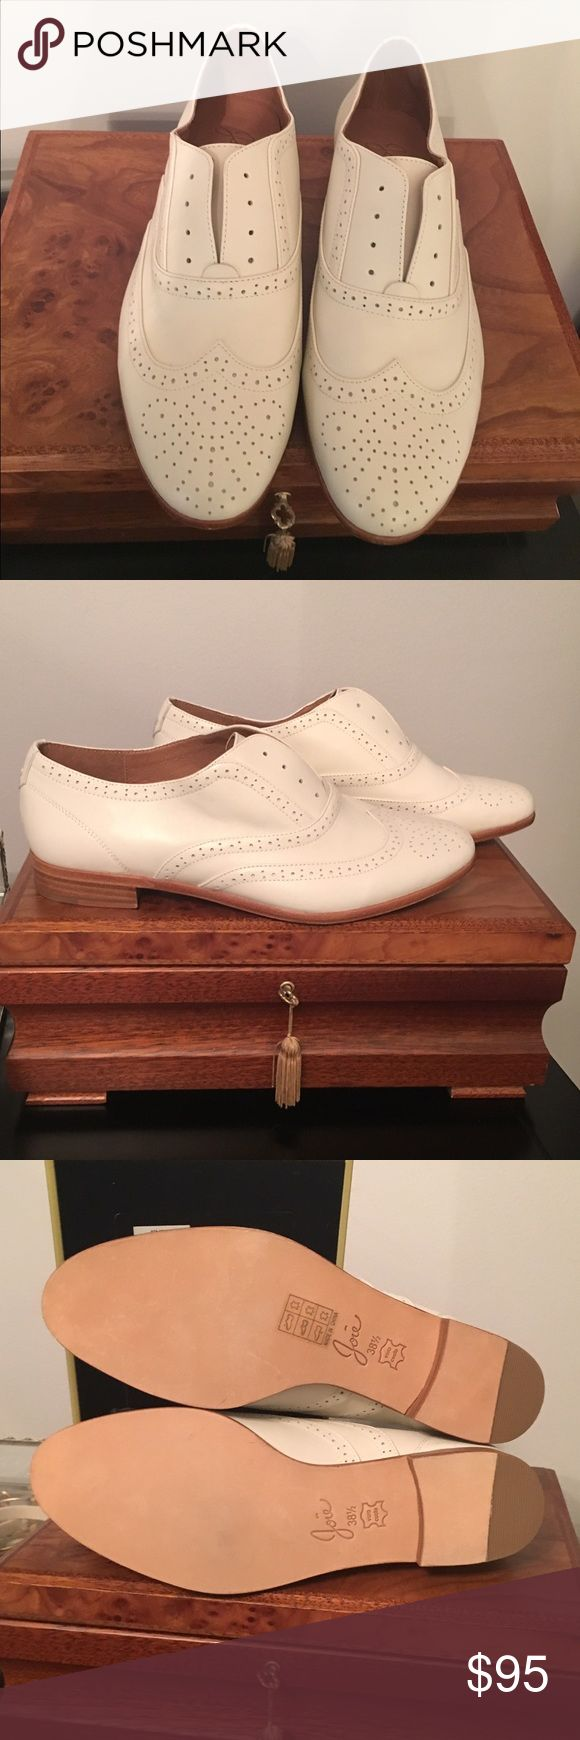 Joie White Laceless Oxford Flats. NEVER WORN. Stacked heel, laceless, true to size. Never worn. Purchased in 2014. The current style of this shoe has a white heel, these have a beautiful wooden stack heel. Joie Shoes Flats & Loafers